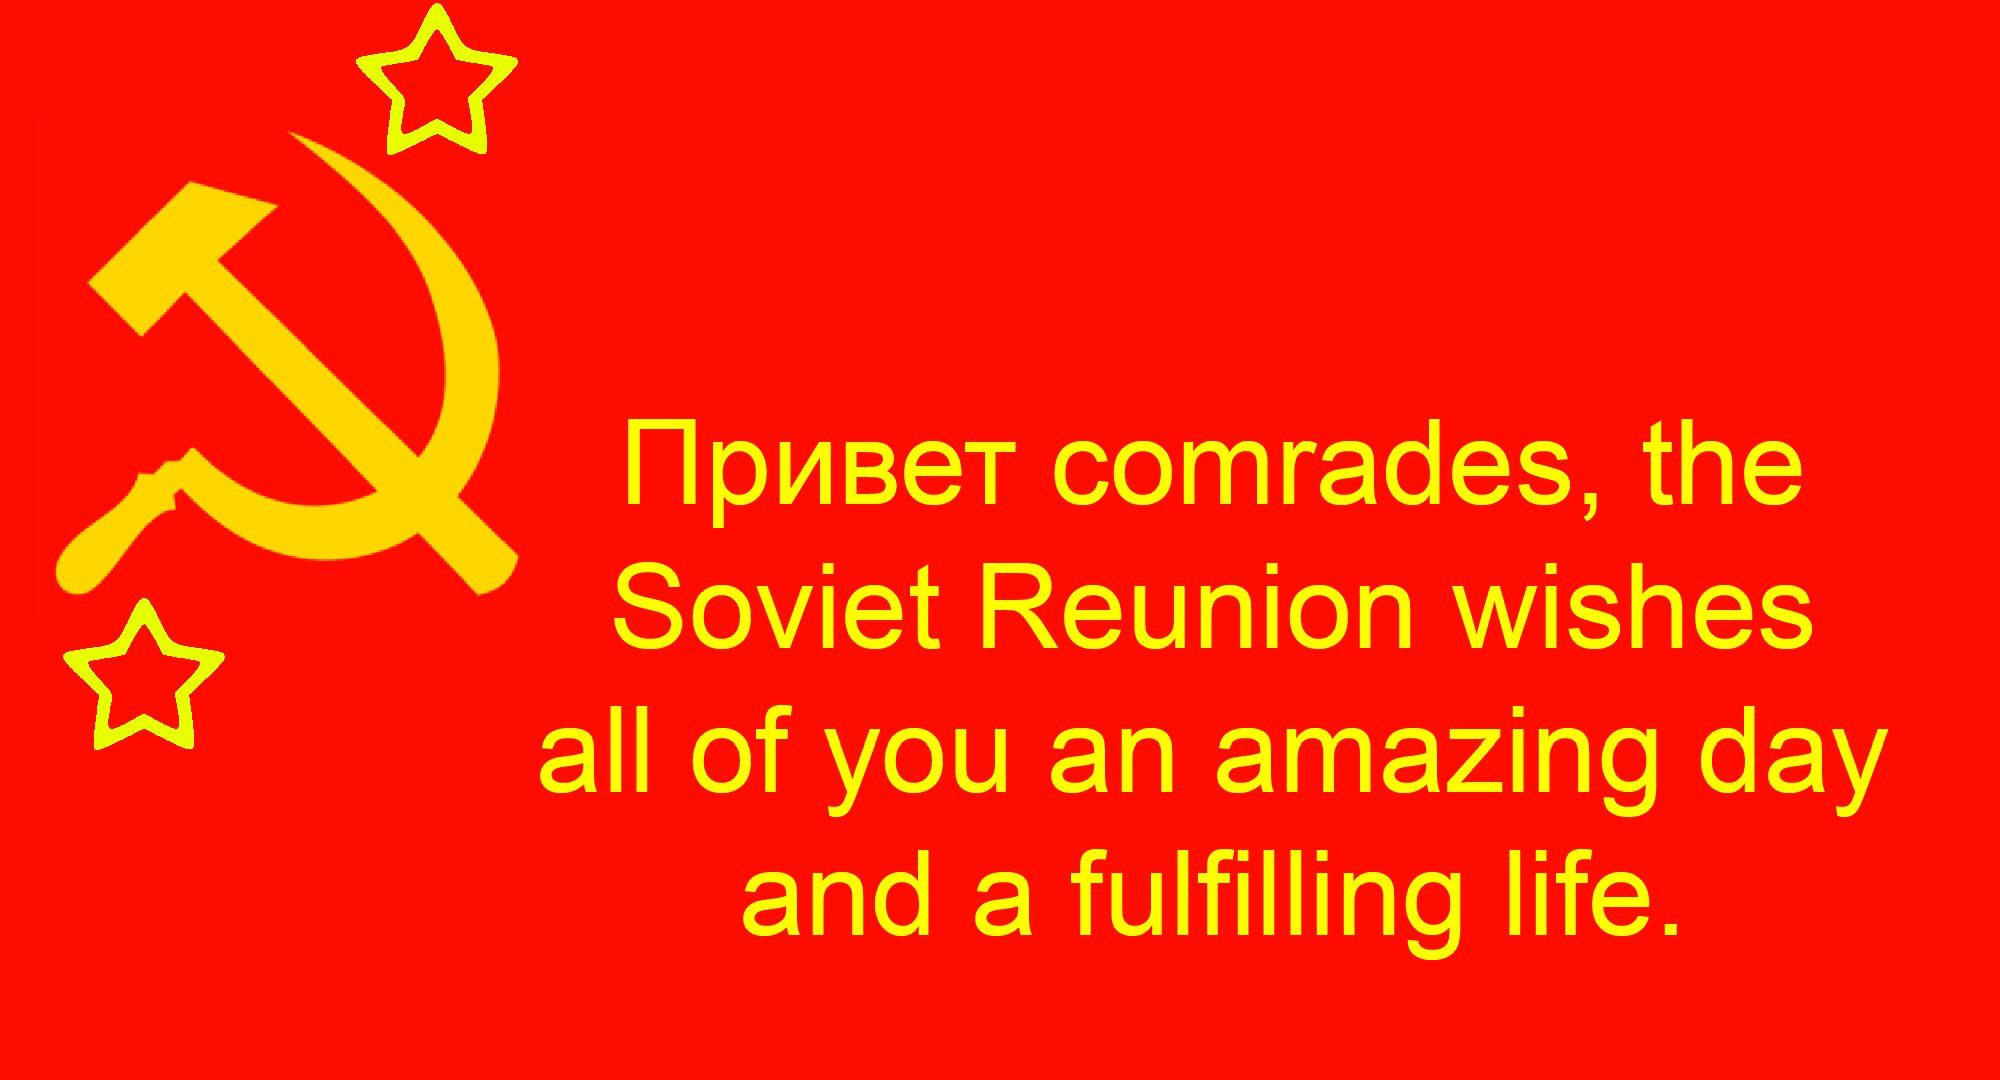 [Image] We wish you a great life, comrade